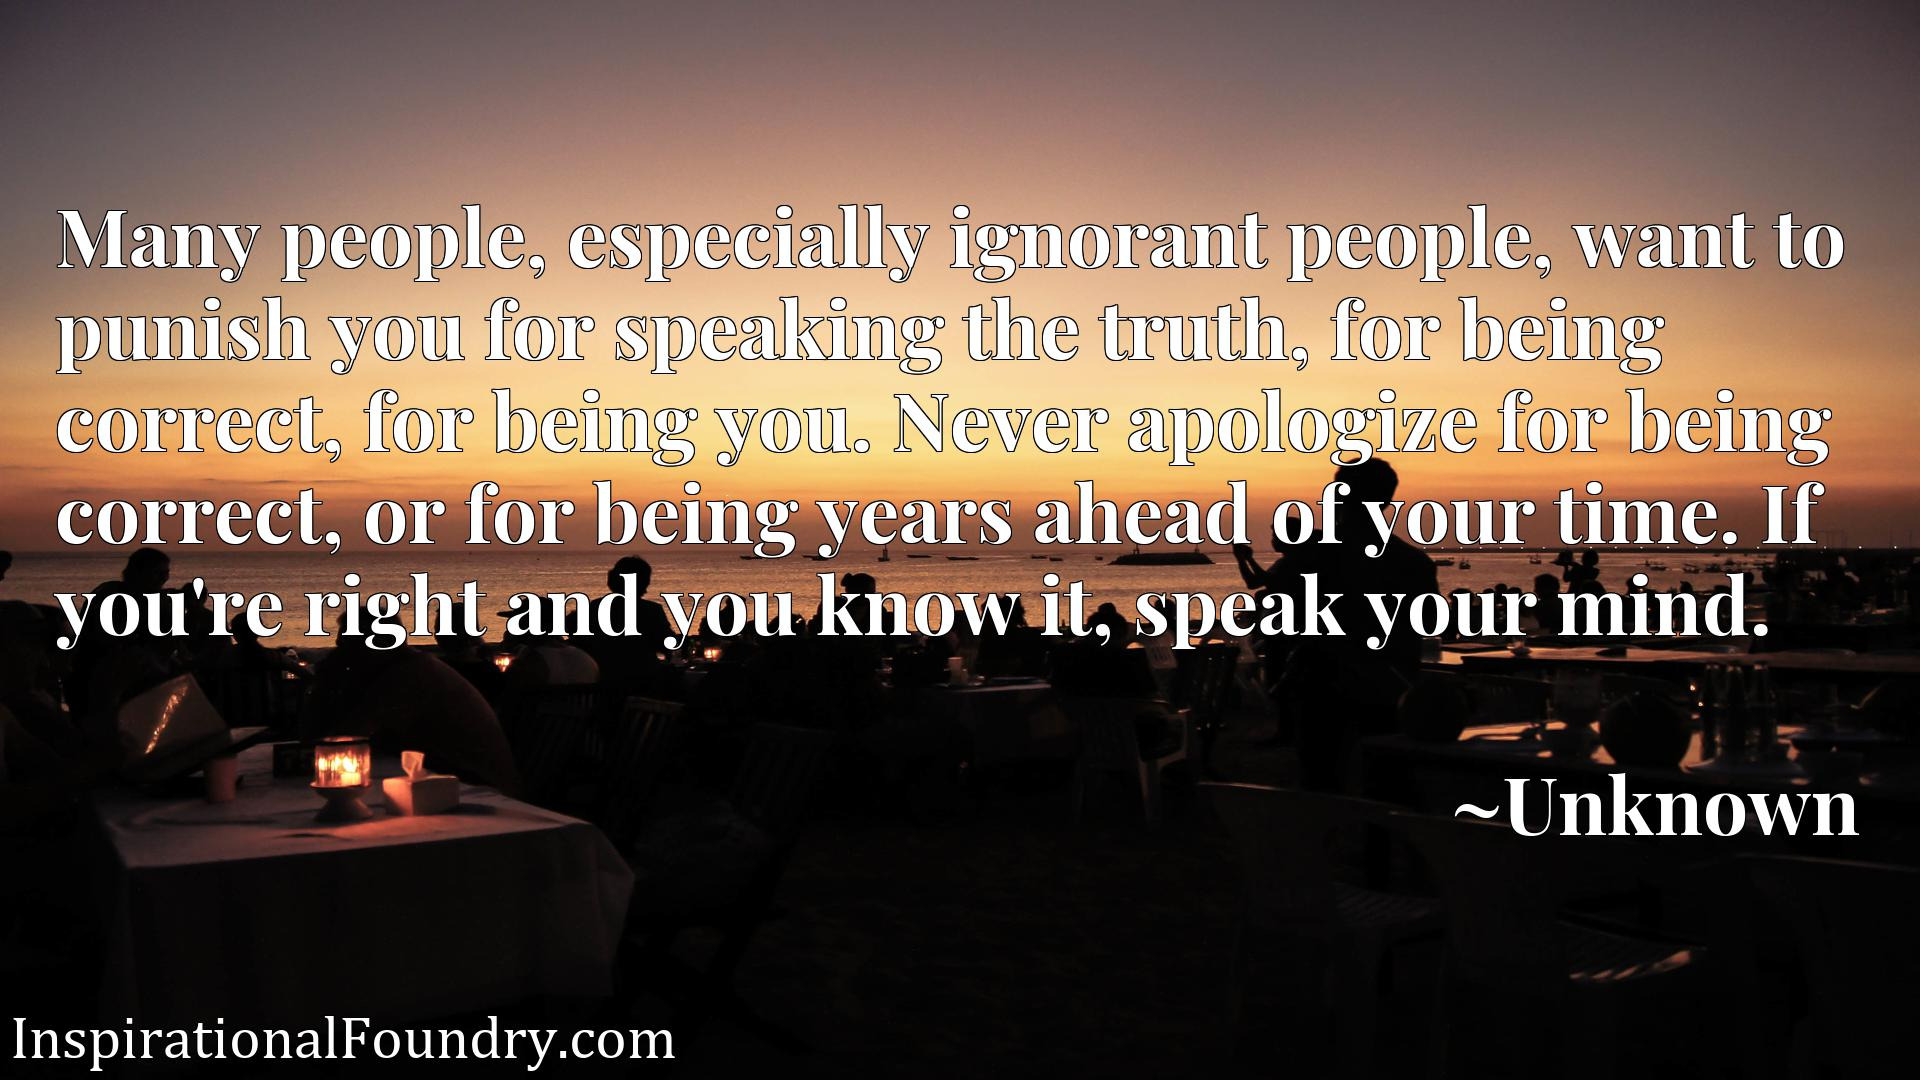 Quote Picture :Many people, especially ignorant people, want to punish you for speaking the truth, for being correct, for being you. Never apologize for being correct, or for being years ahead of your time. If you're right and you know it, speak your mind.